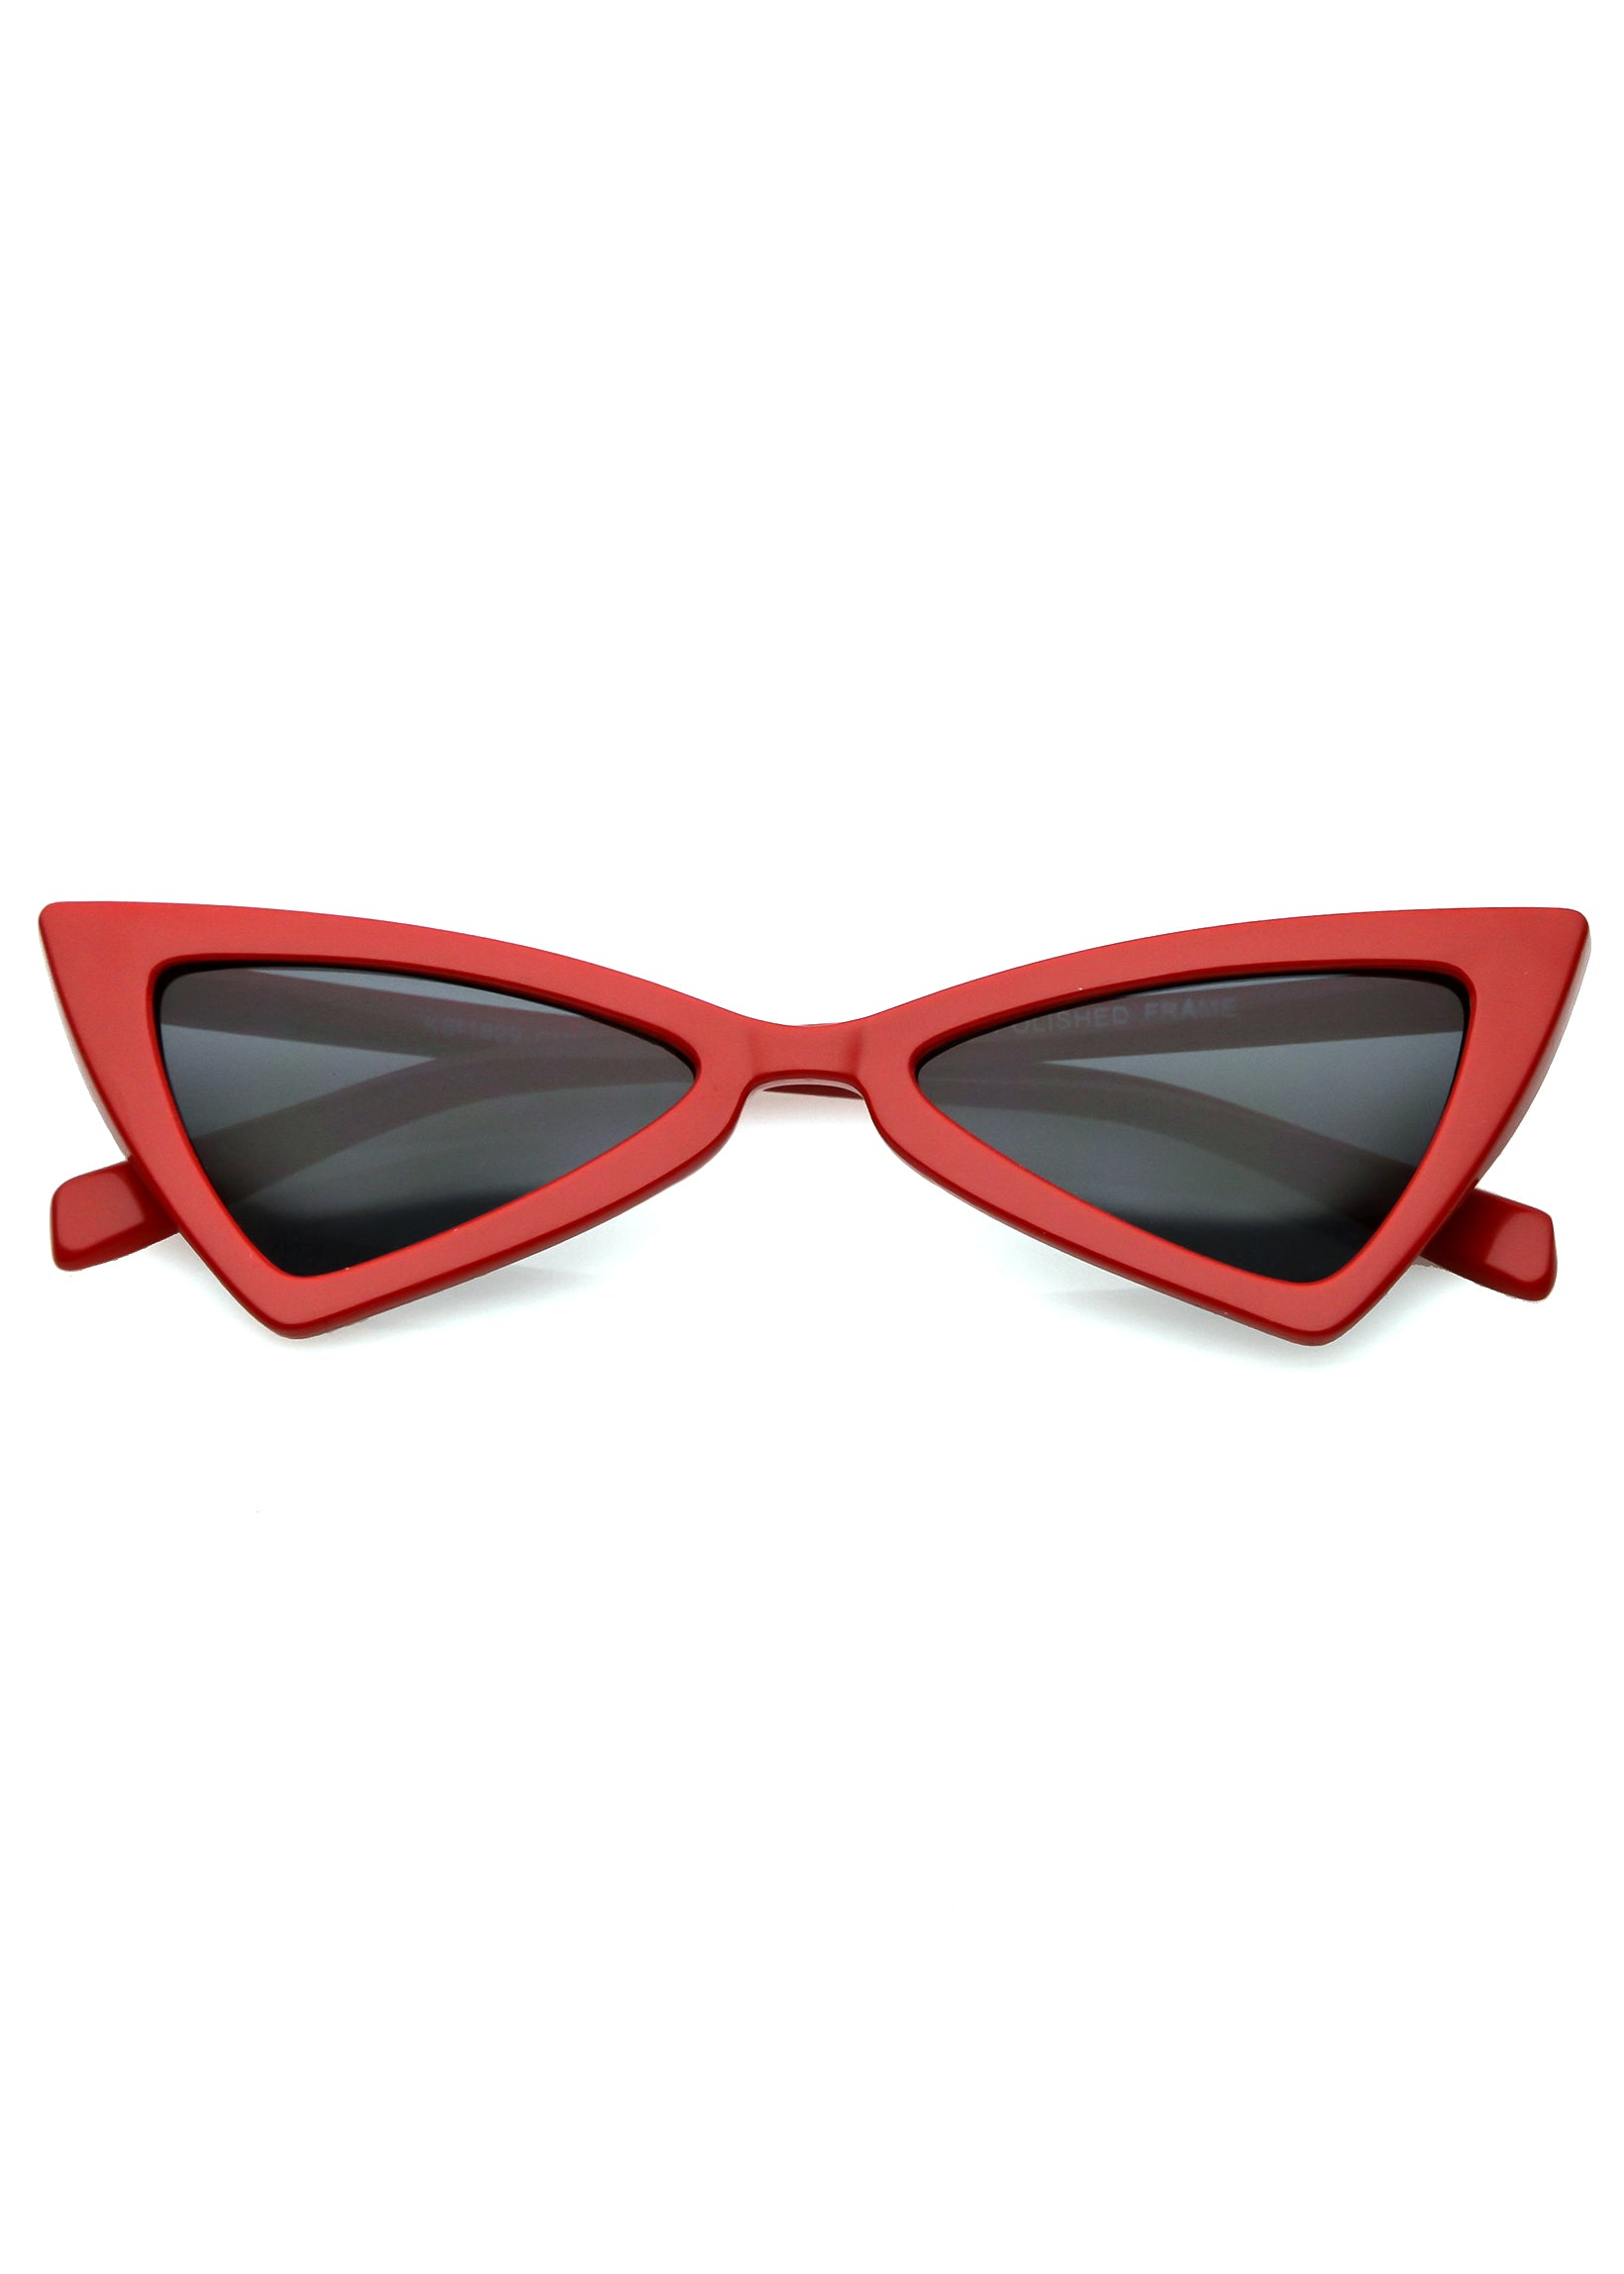 Electric Dreams Cat Eye Sunglasses - Red